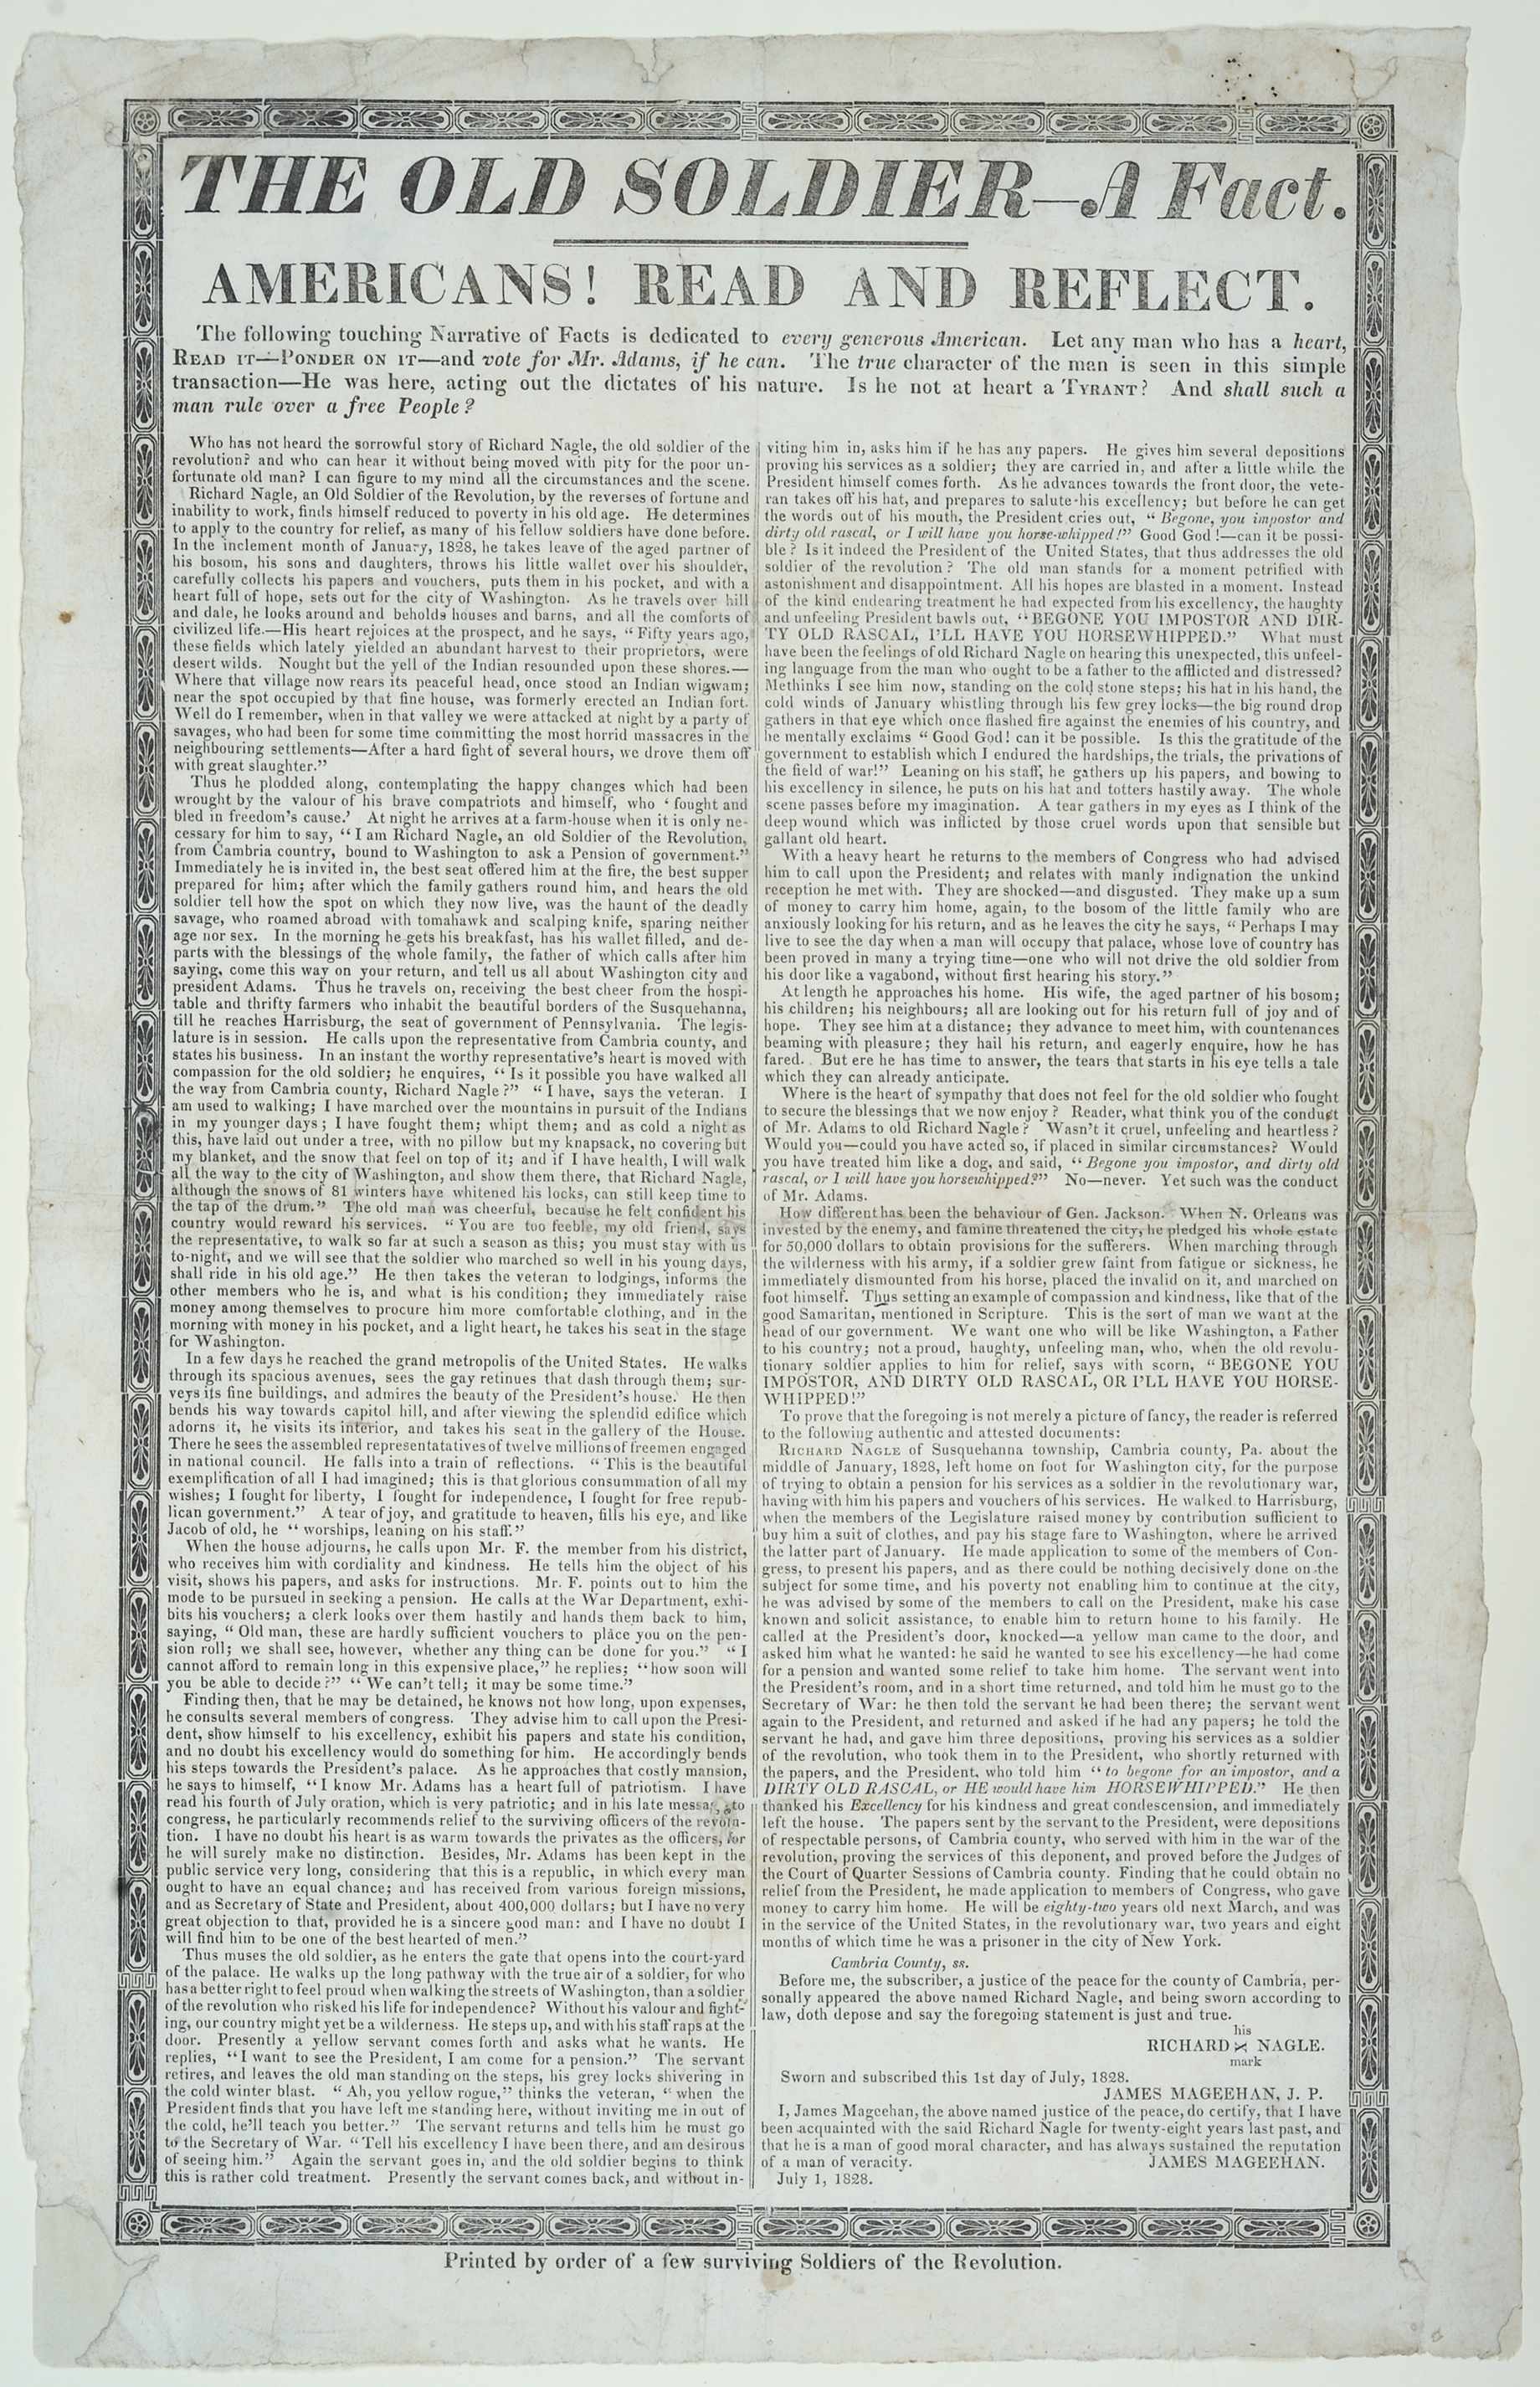 The Old Soldier broadside, 1828